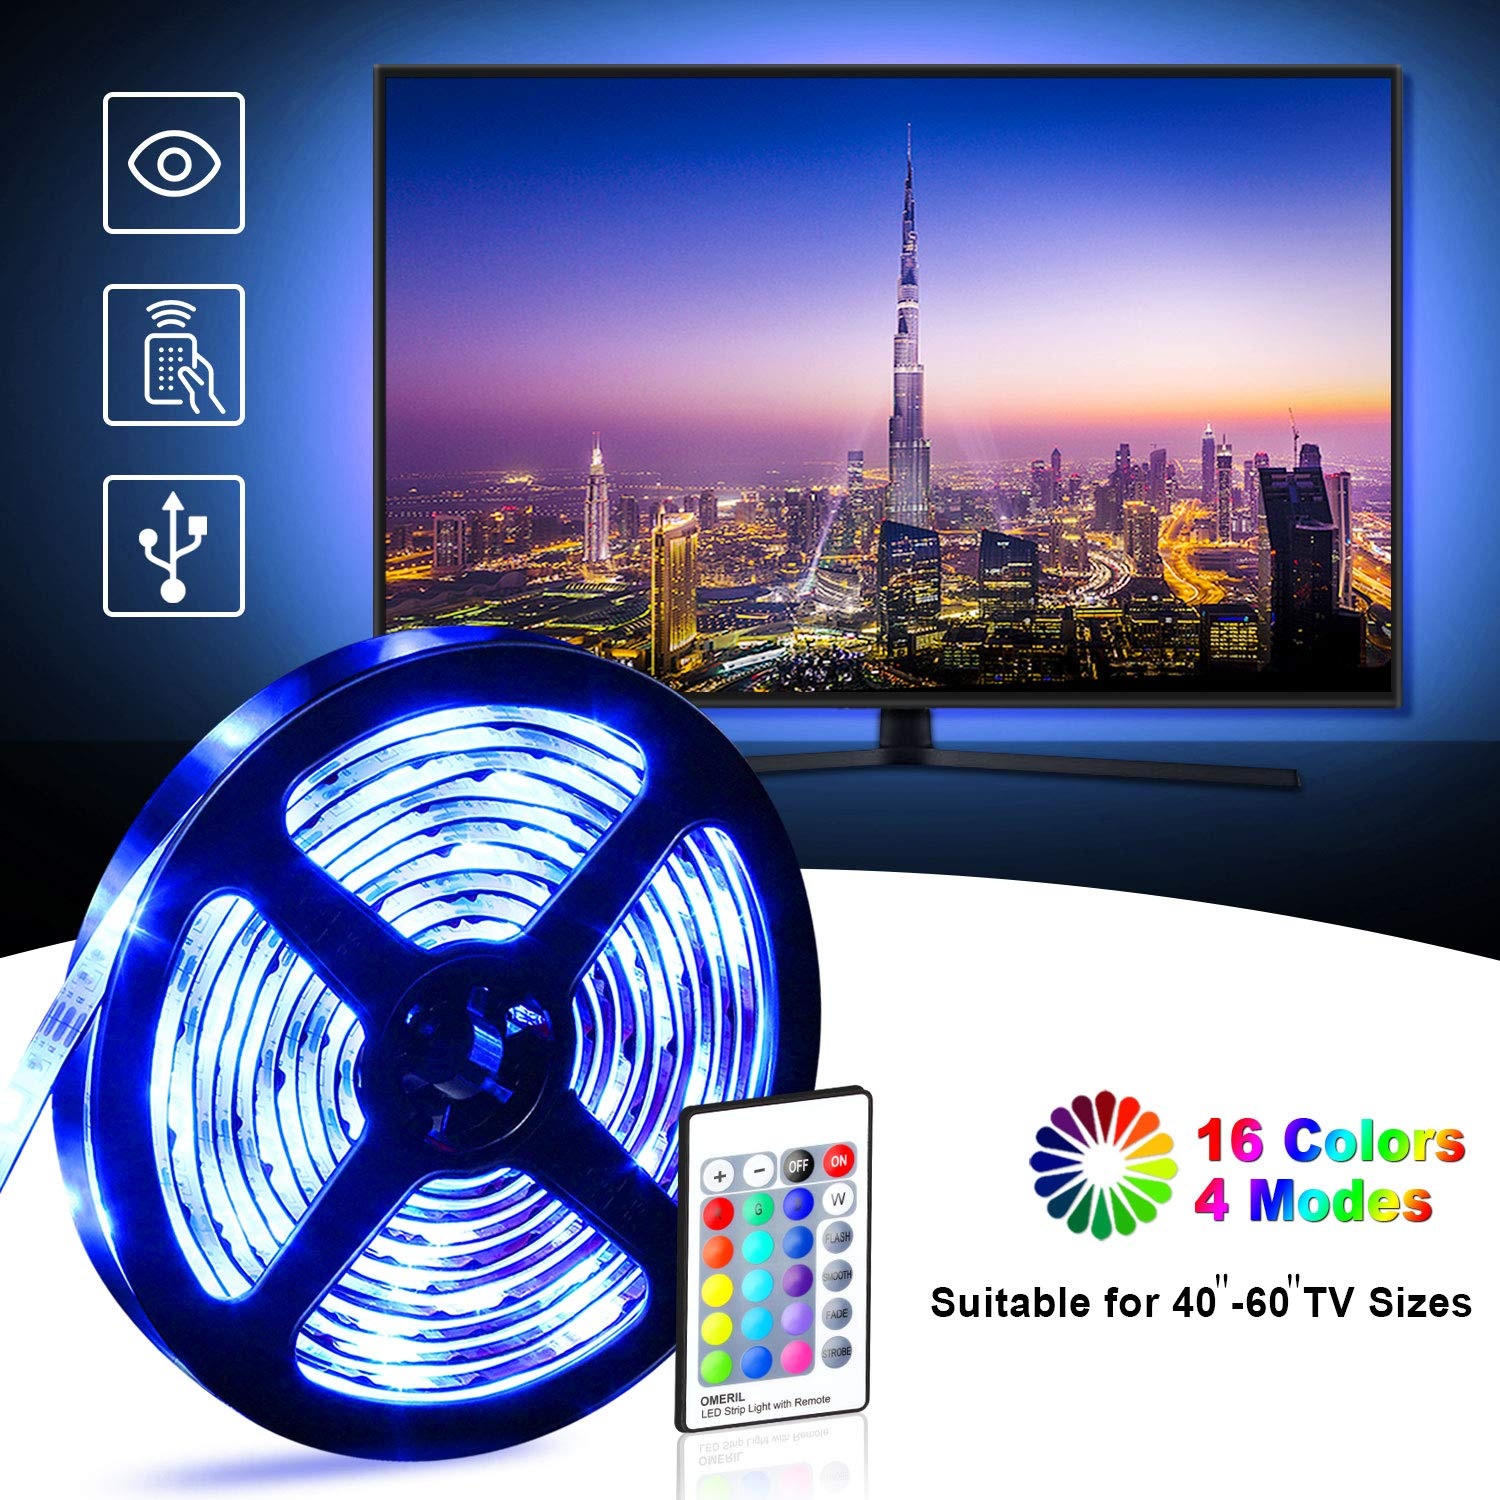 Tira LED TV 2.2M, OMERIL 5050 Tiras LED USB Impermeable con Control Remoto, 16 RGB Colores y 4 Modos, Retroiluminacion LED de TV para Cine en Casa, HDTV/PC Monitor (40-60 Pulgada) – 2x50cm+2x60cm